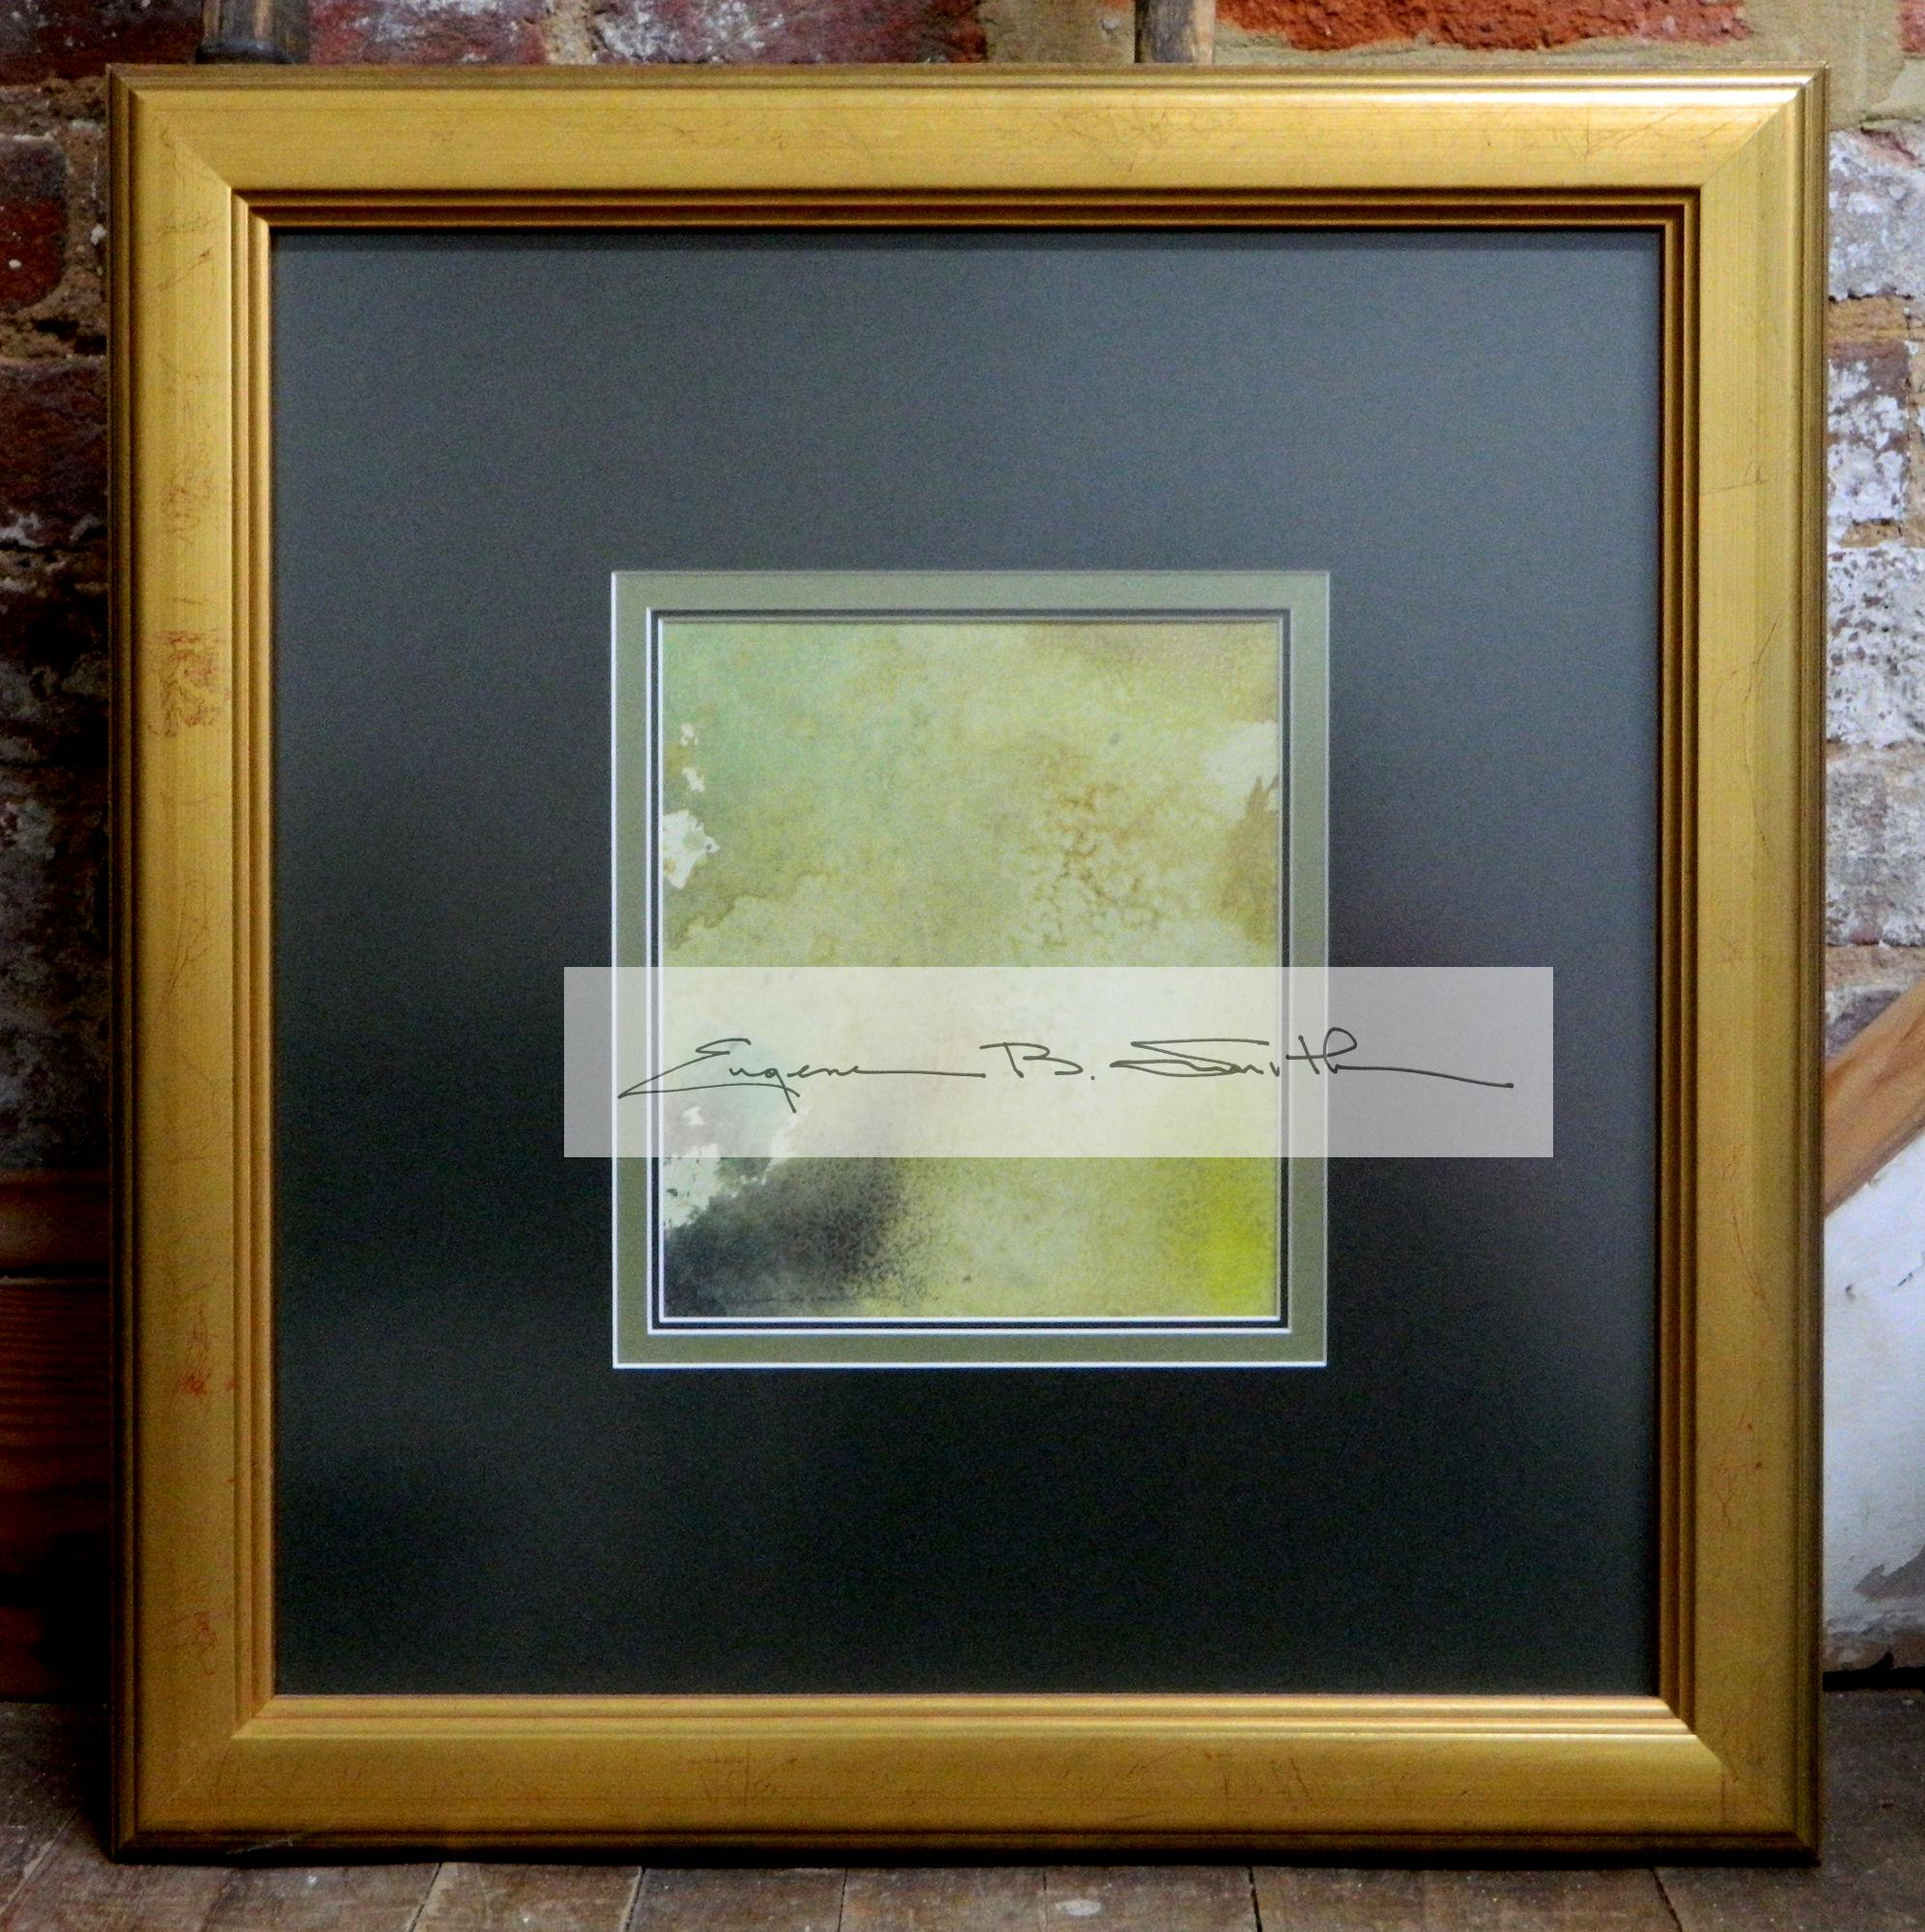 Expansion Abstract Image size: 8 x 7 | Frame size: 17 x 16 | Call for price